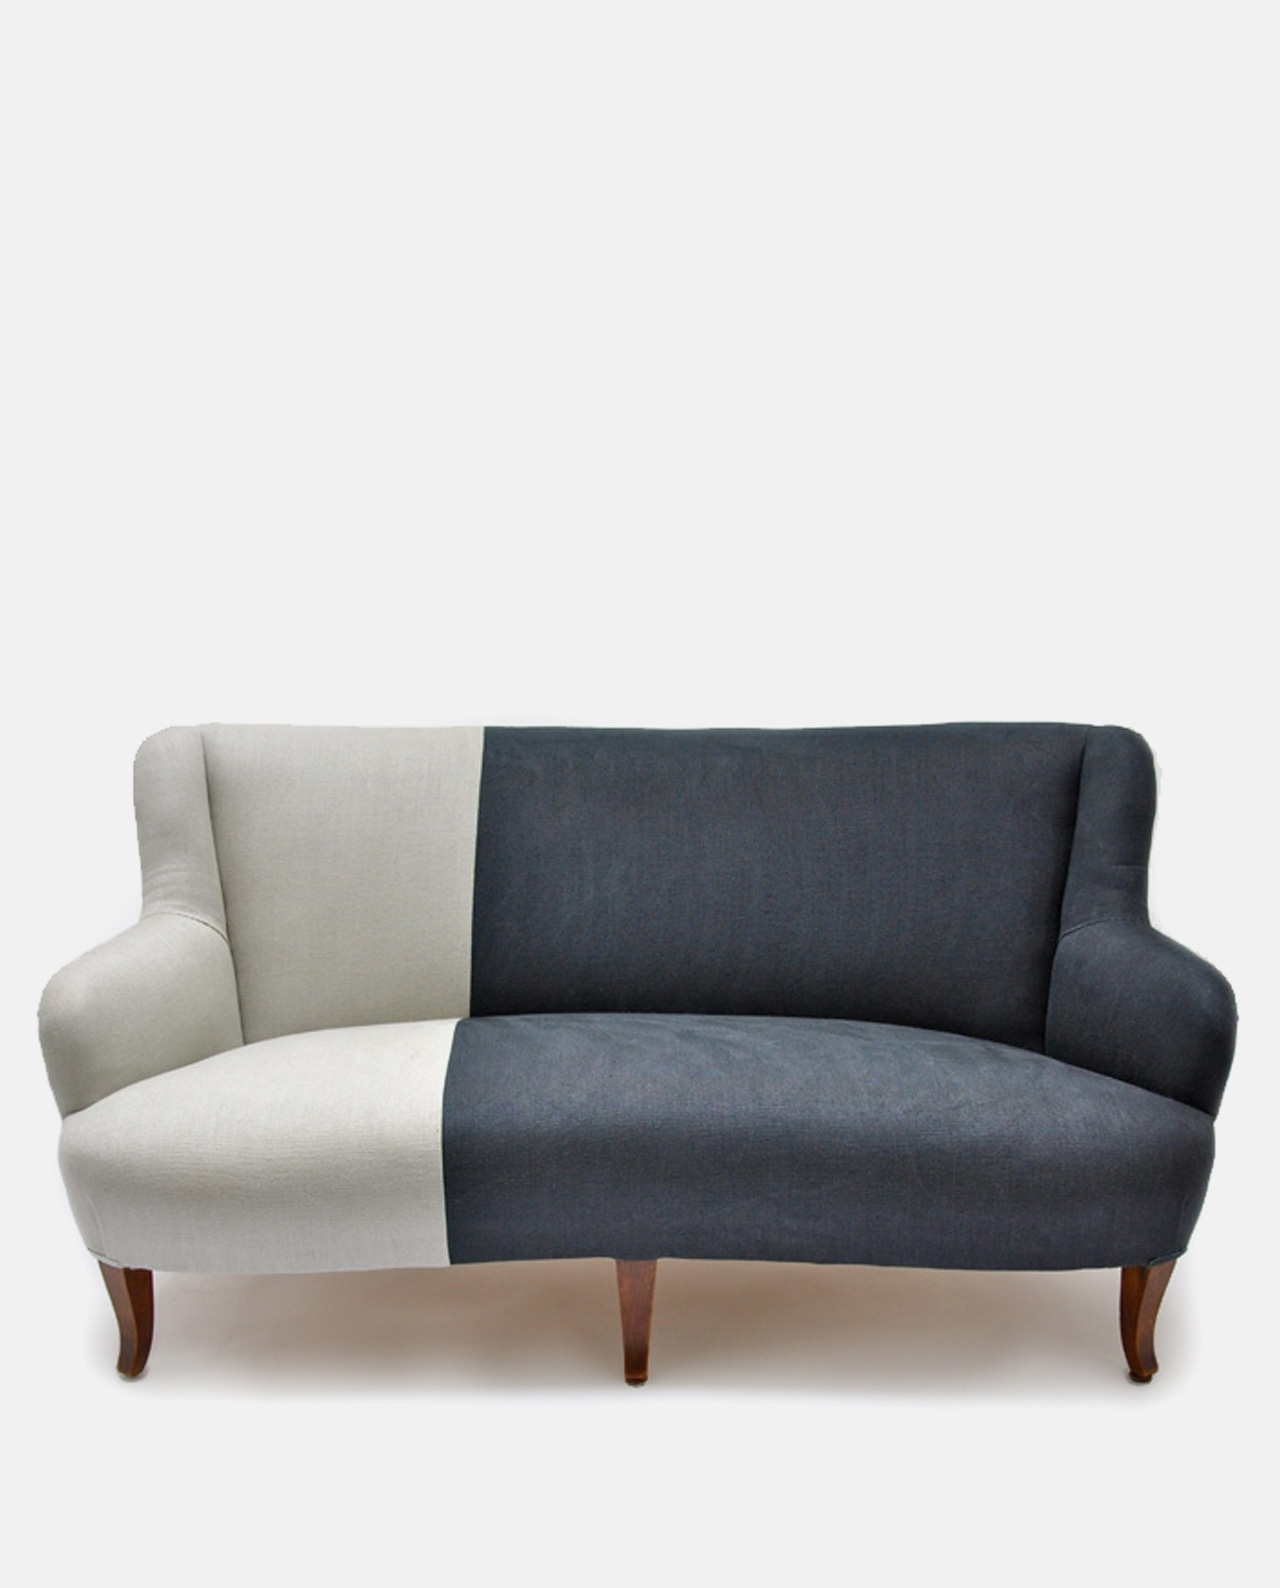 Two Tone Sofas Throughout Widely Used Vintage Two Tone Sofa Designers Guild Linen (View 14 of 20)